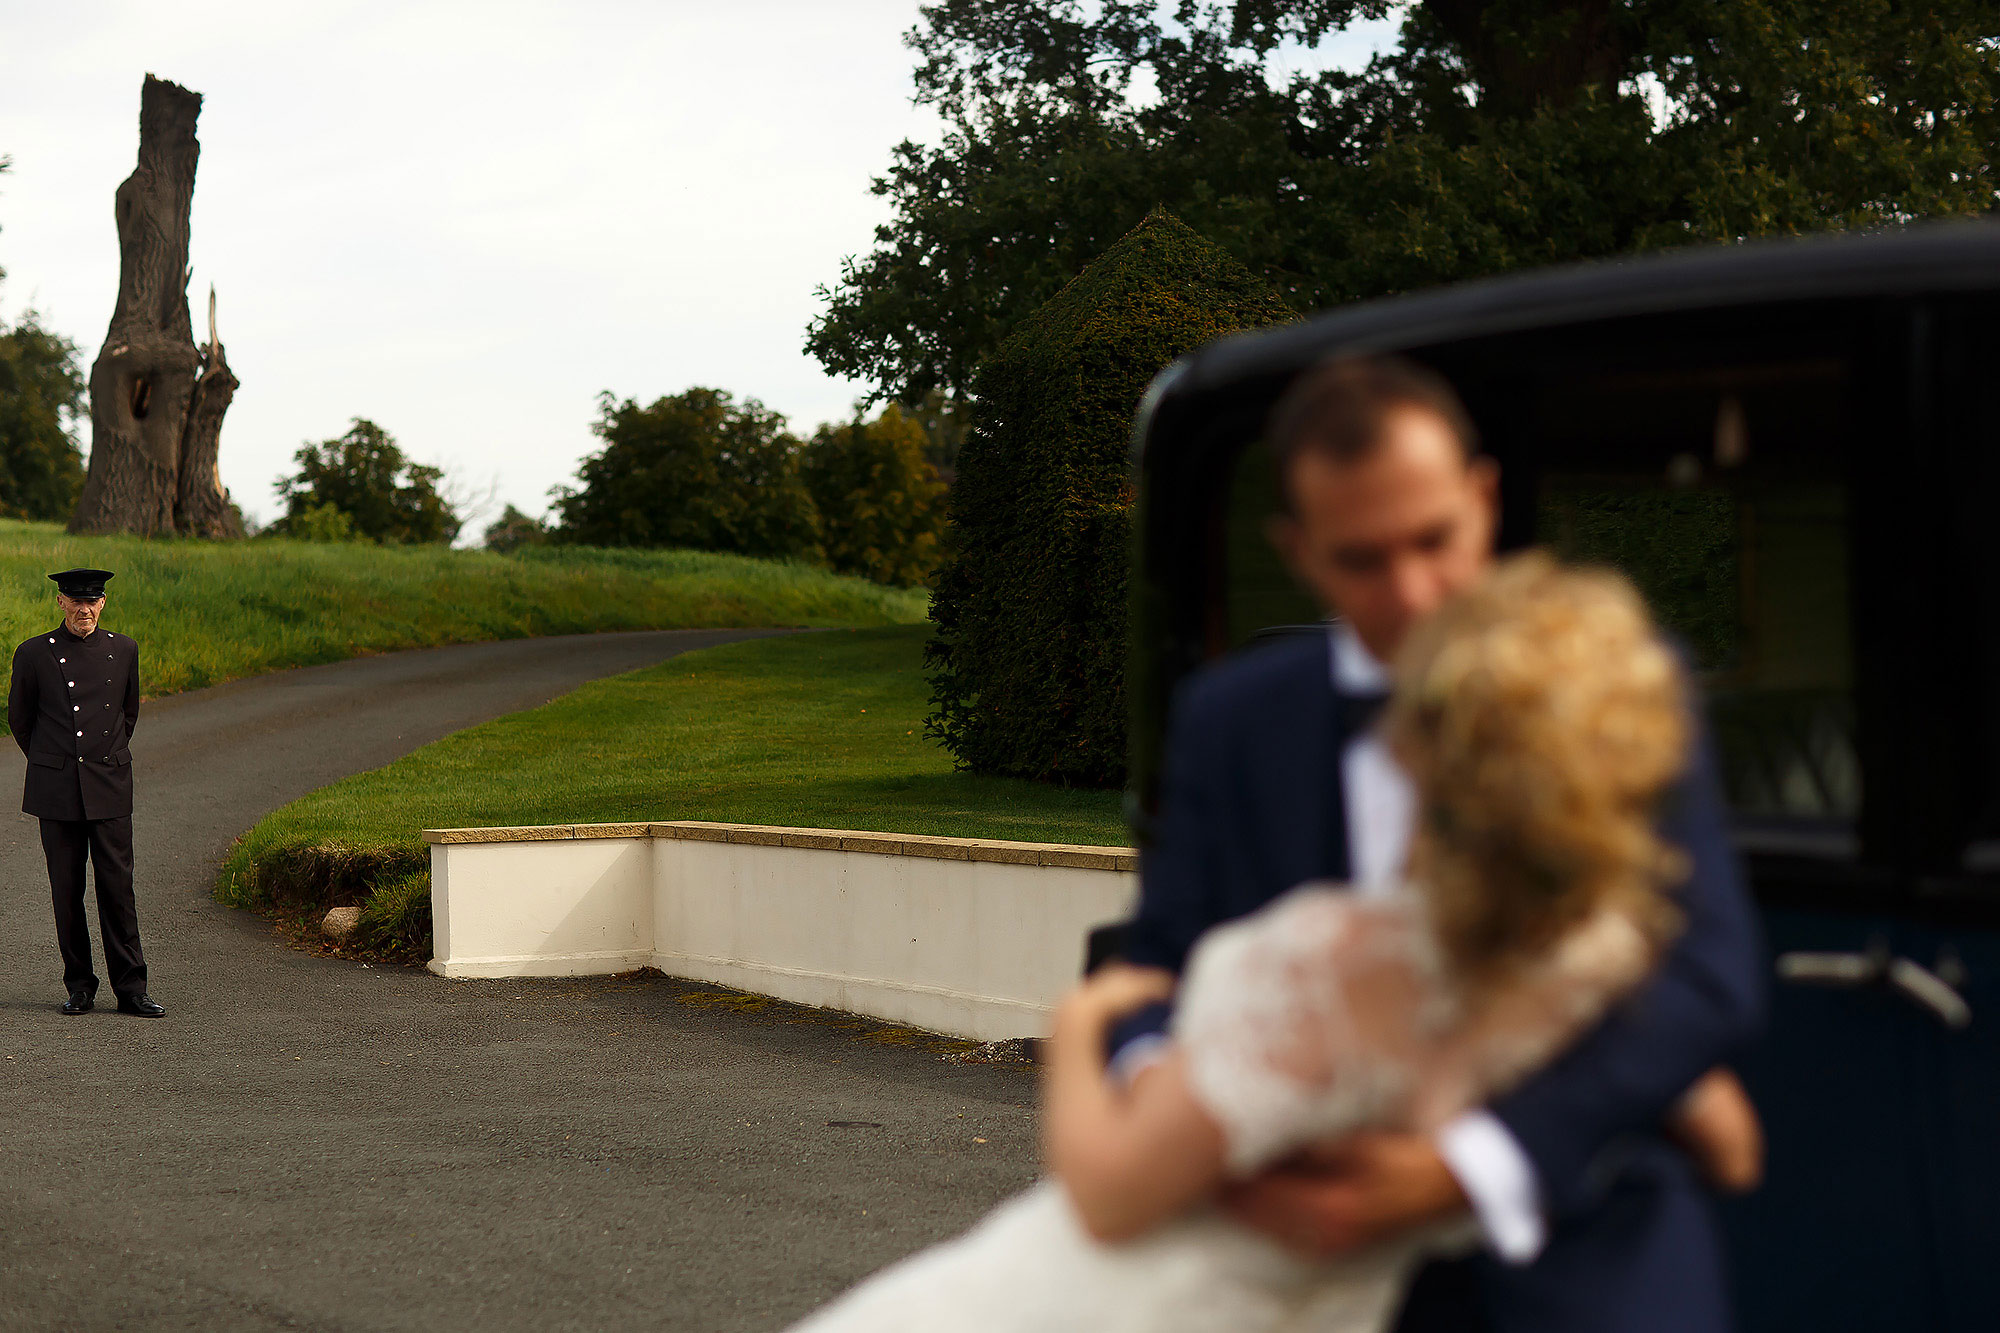 Bride and groom in front of the wedding car at Combermere Abbey as the driver looks on